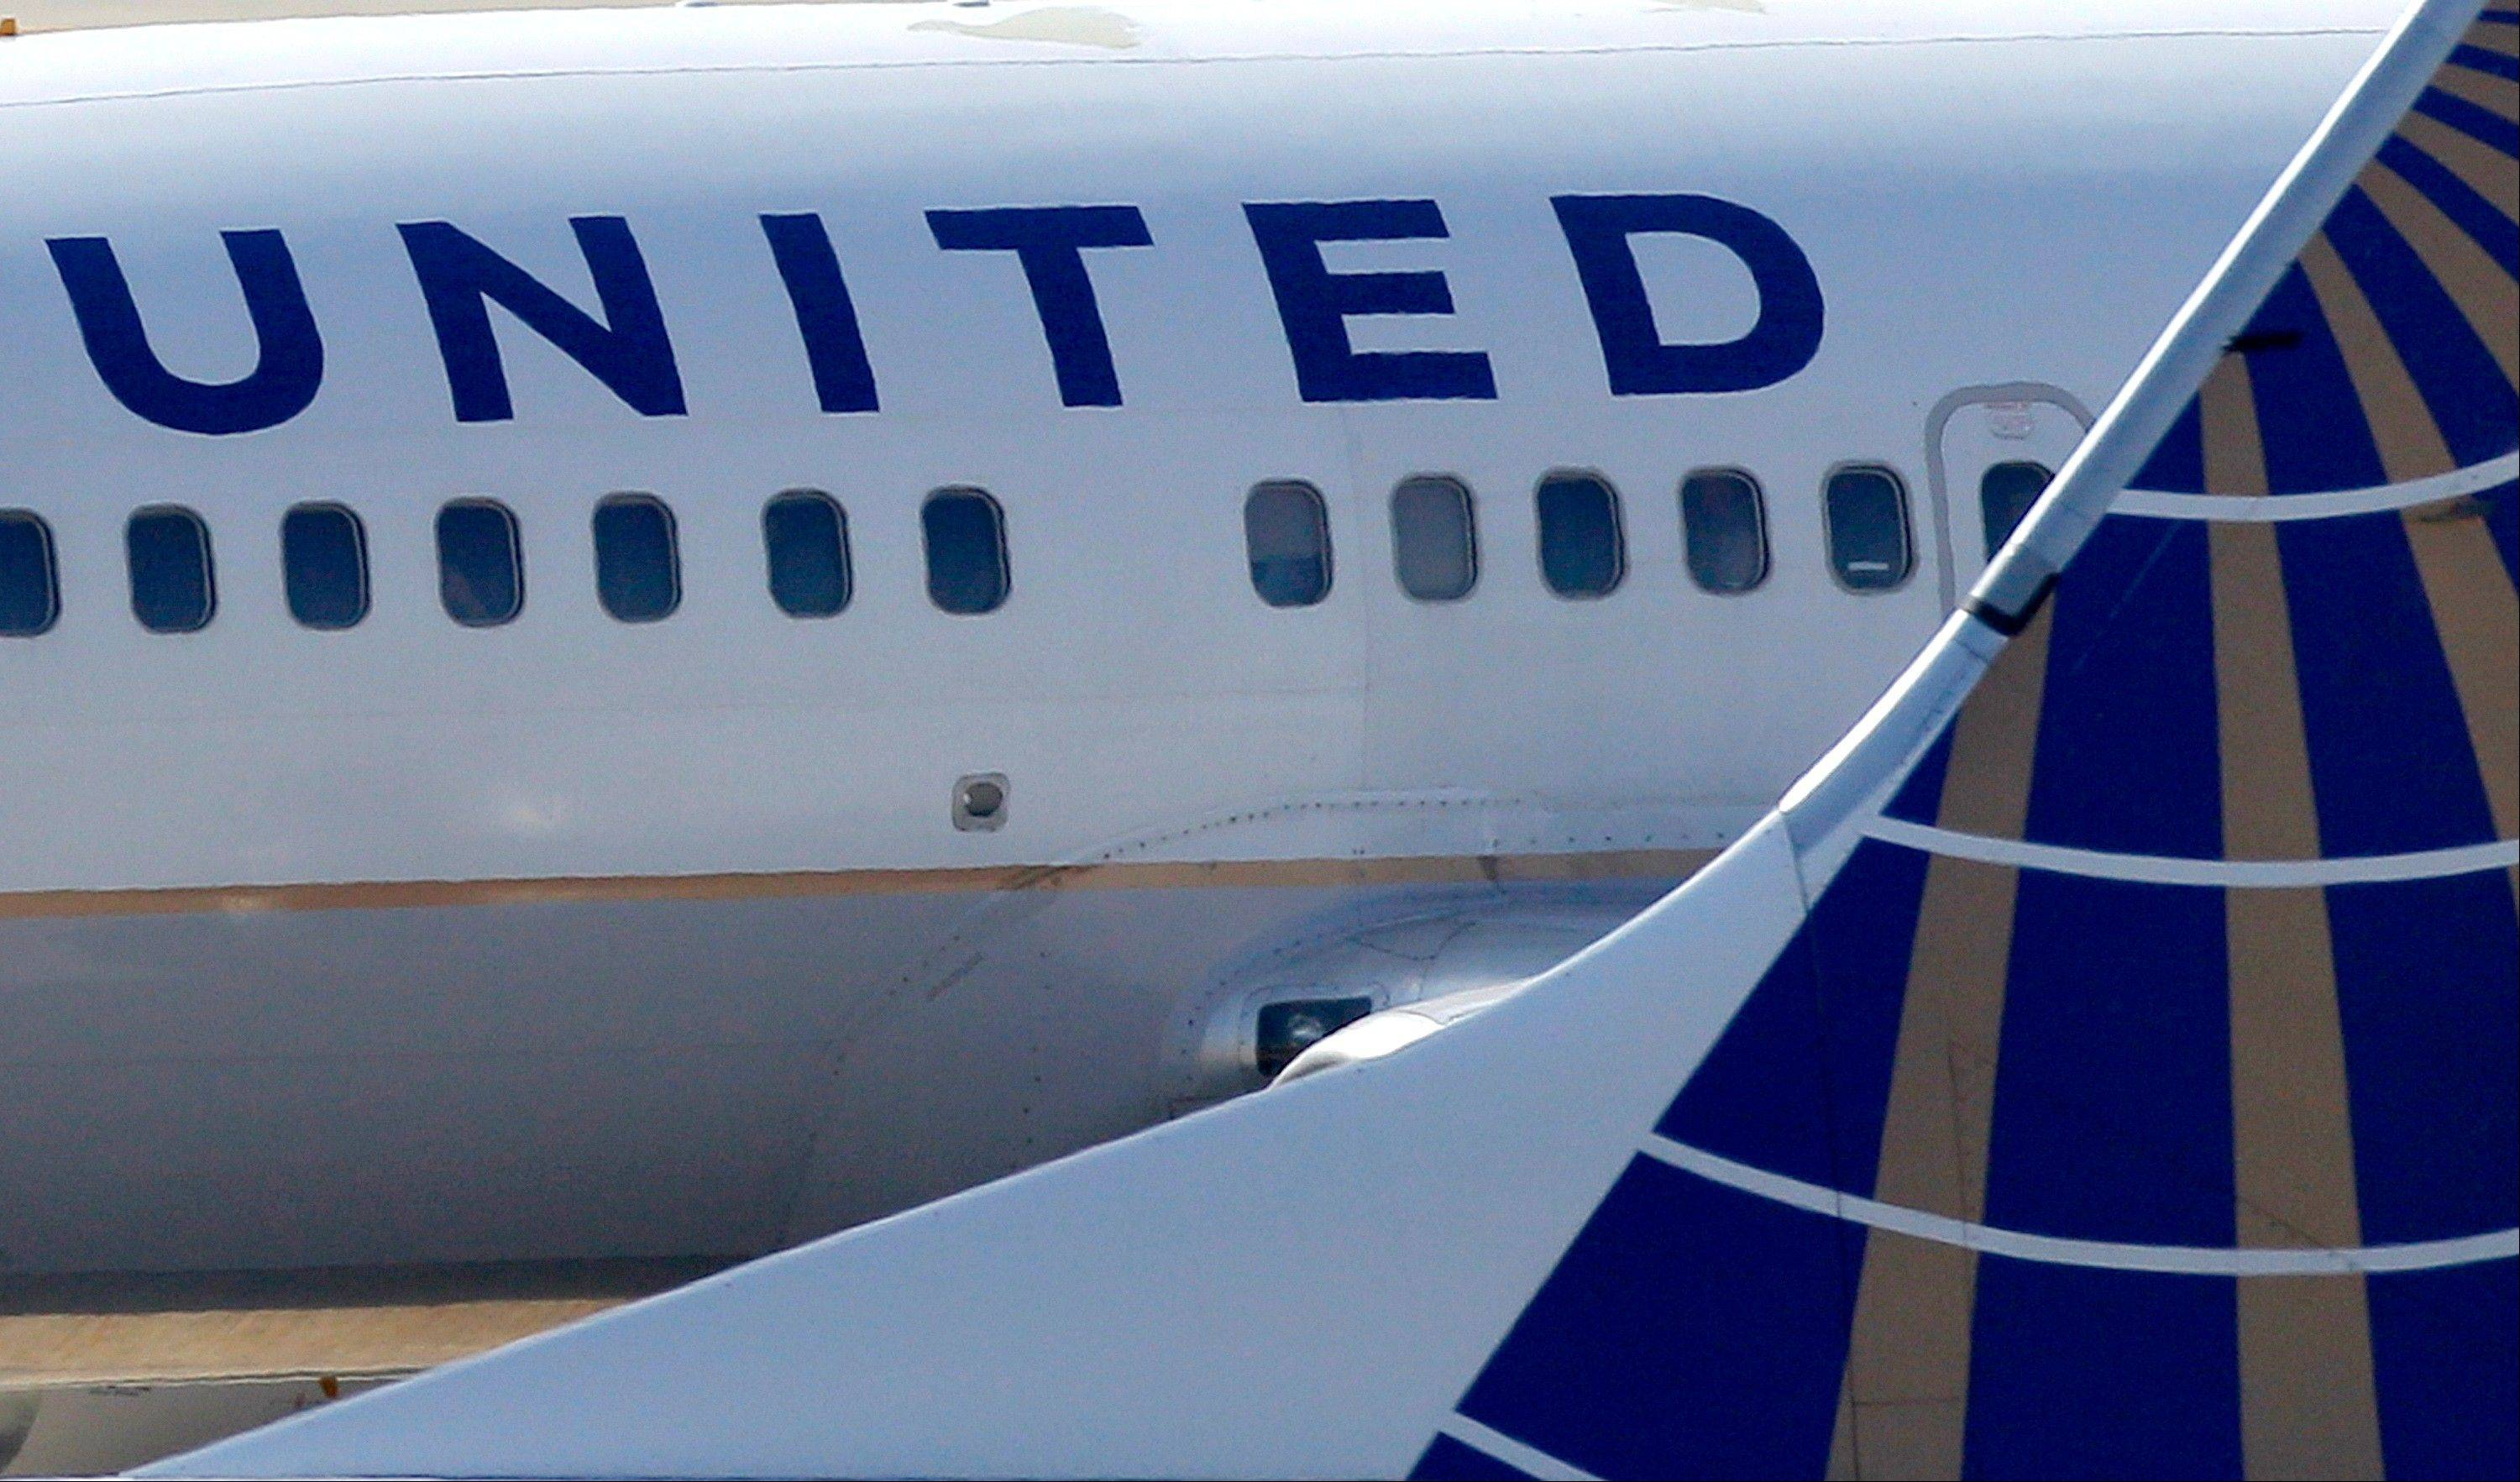 ASSOCIATED PRESSUnited Continental Holdings stock climbed to the highest price since 2008 after the world's biggest airline said it would cut $2 billion in annual spending and boost profit.